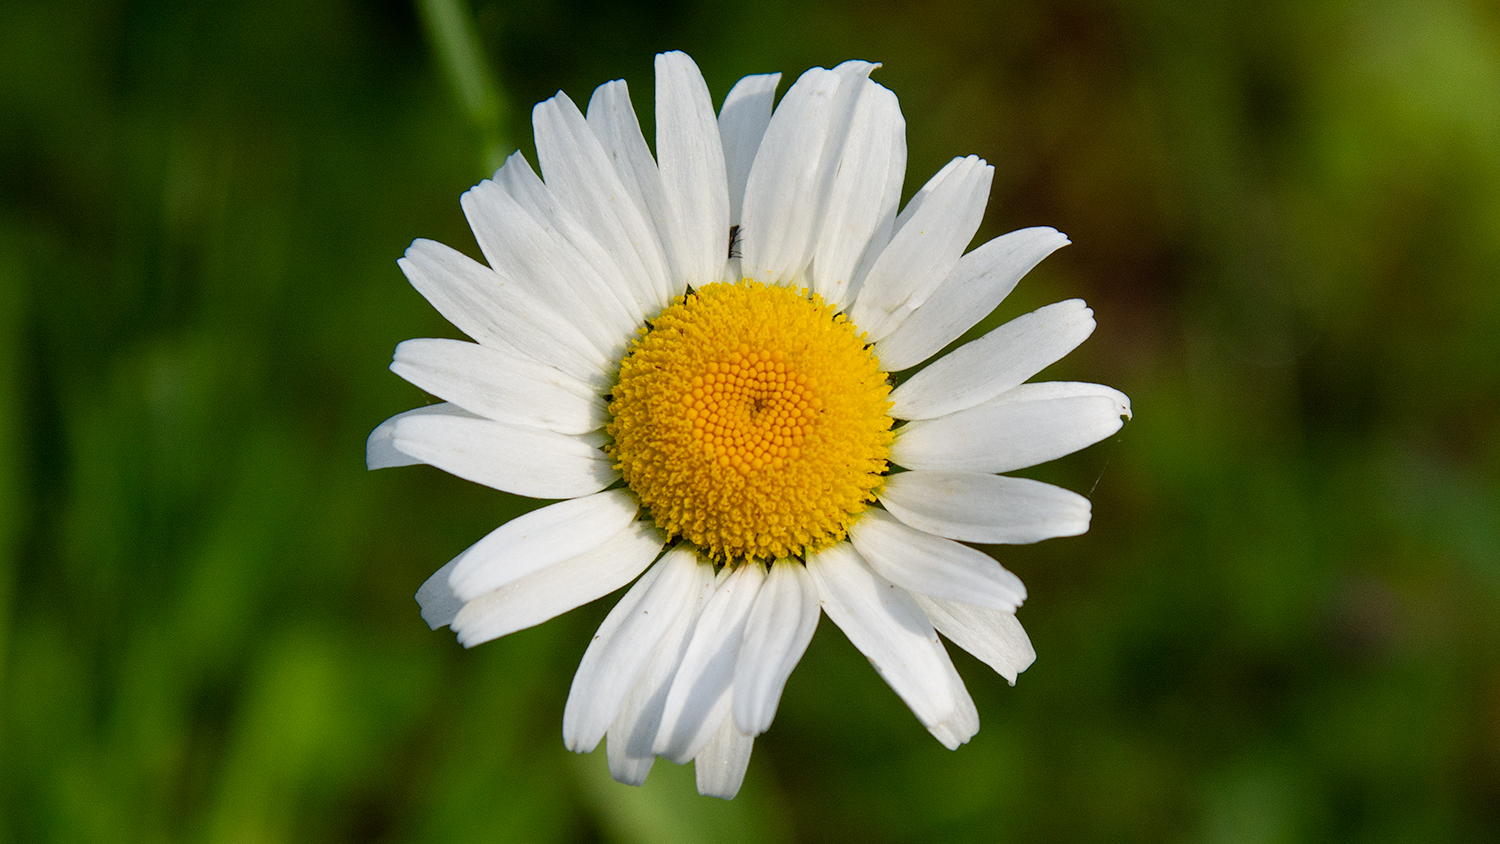 The Shasta Daisy, a species of daisy developed by Luther Burbank, is prepared as a flower essence by FES